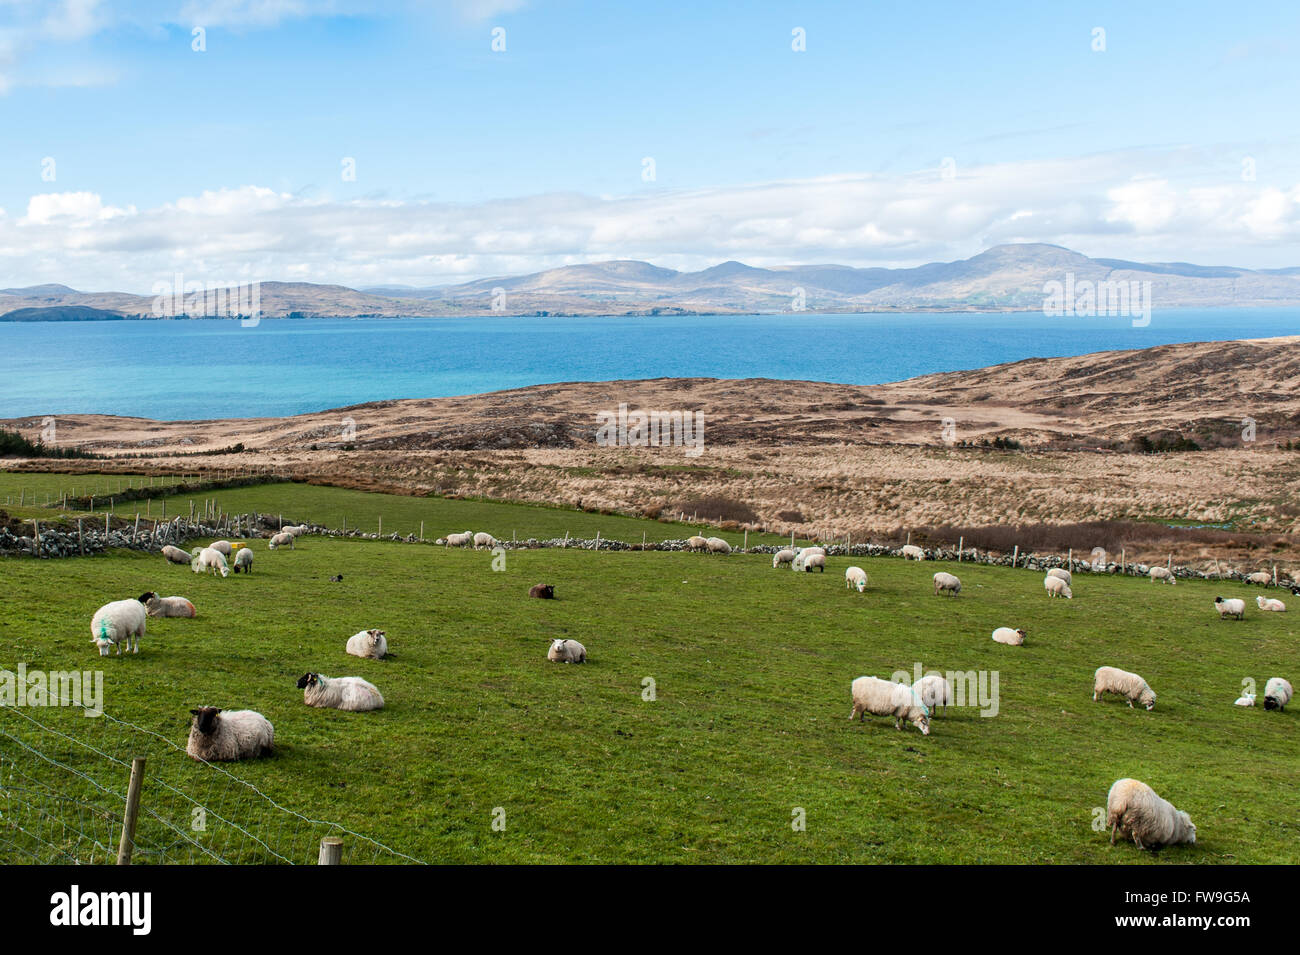 Flock of sheep in a field on the Sheep's Head Way, West Cork, Ireland. - Stock Image